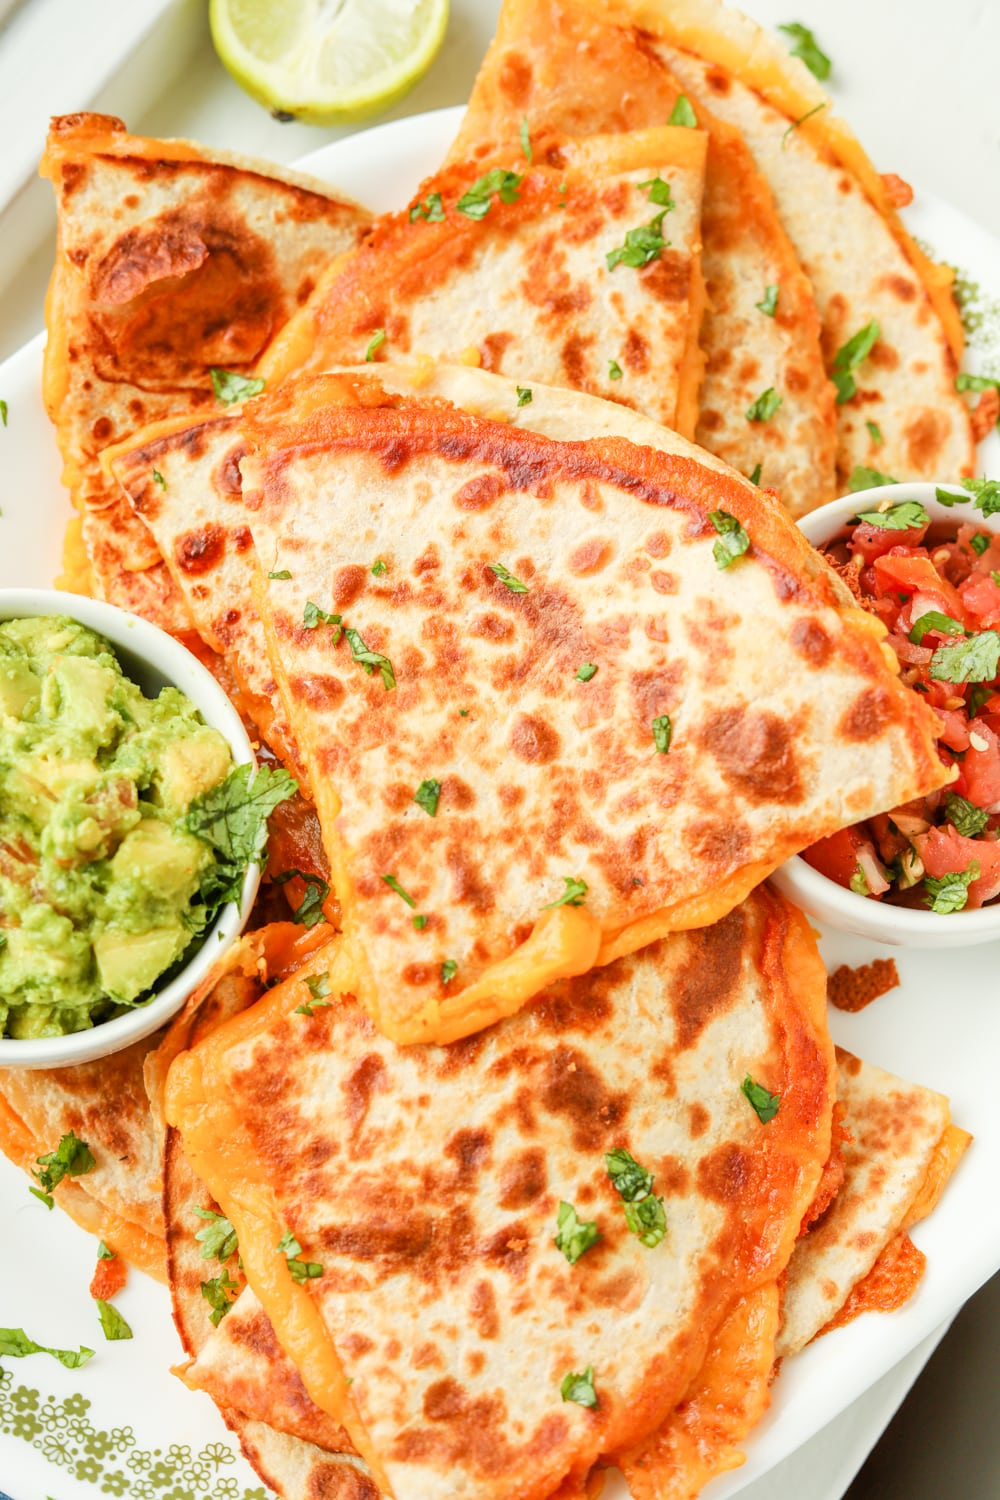 Quesadillas next to sides of tomato and guacamole.